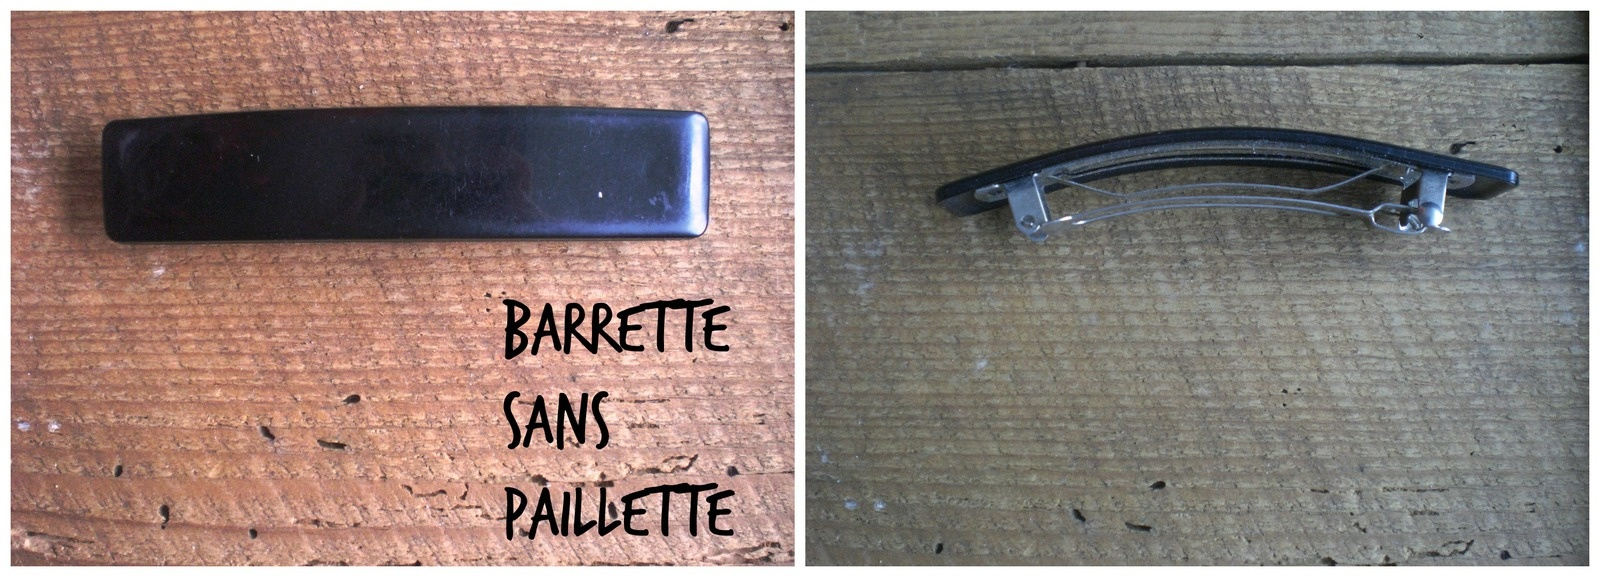 barrette toute simple avant